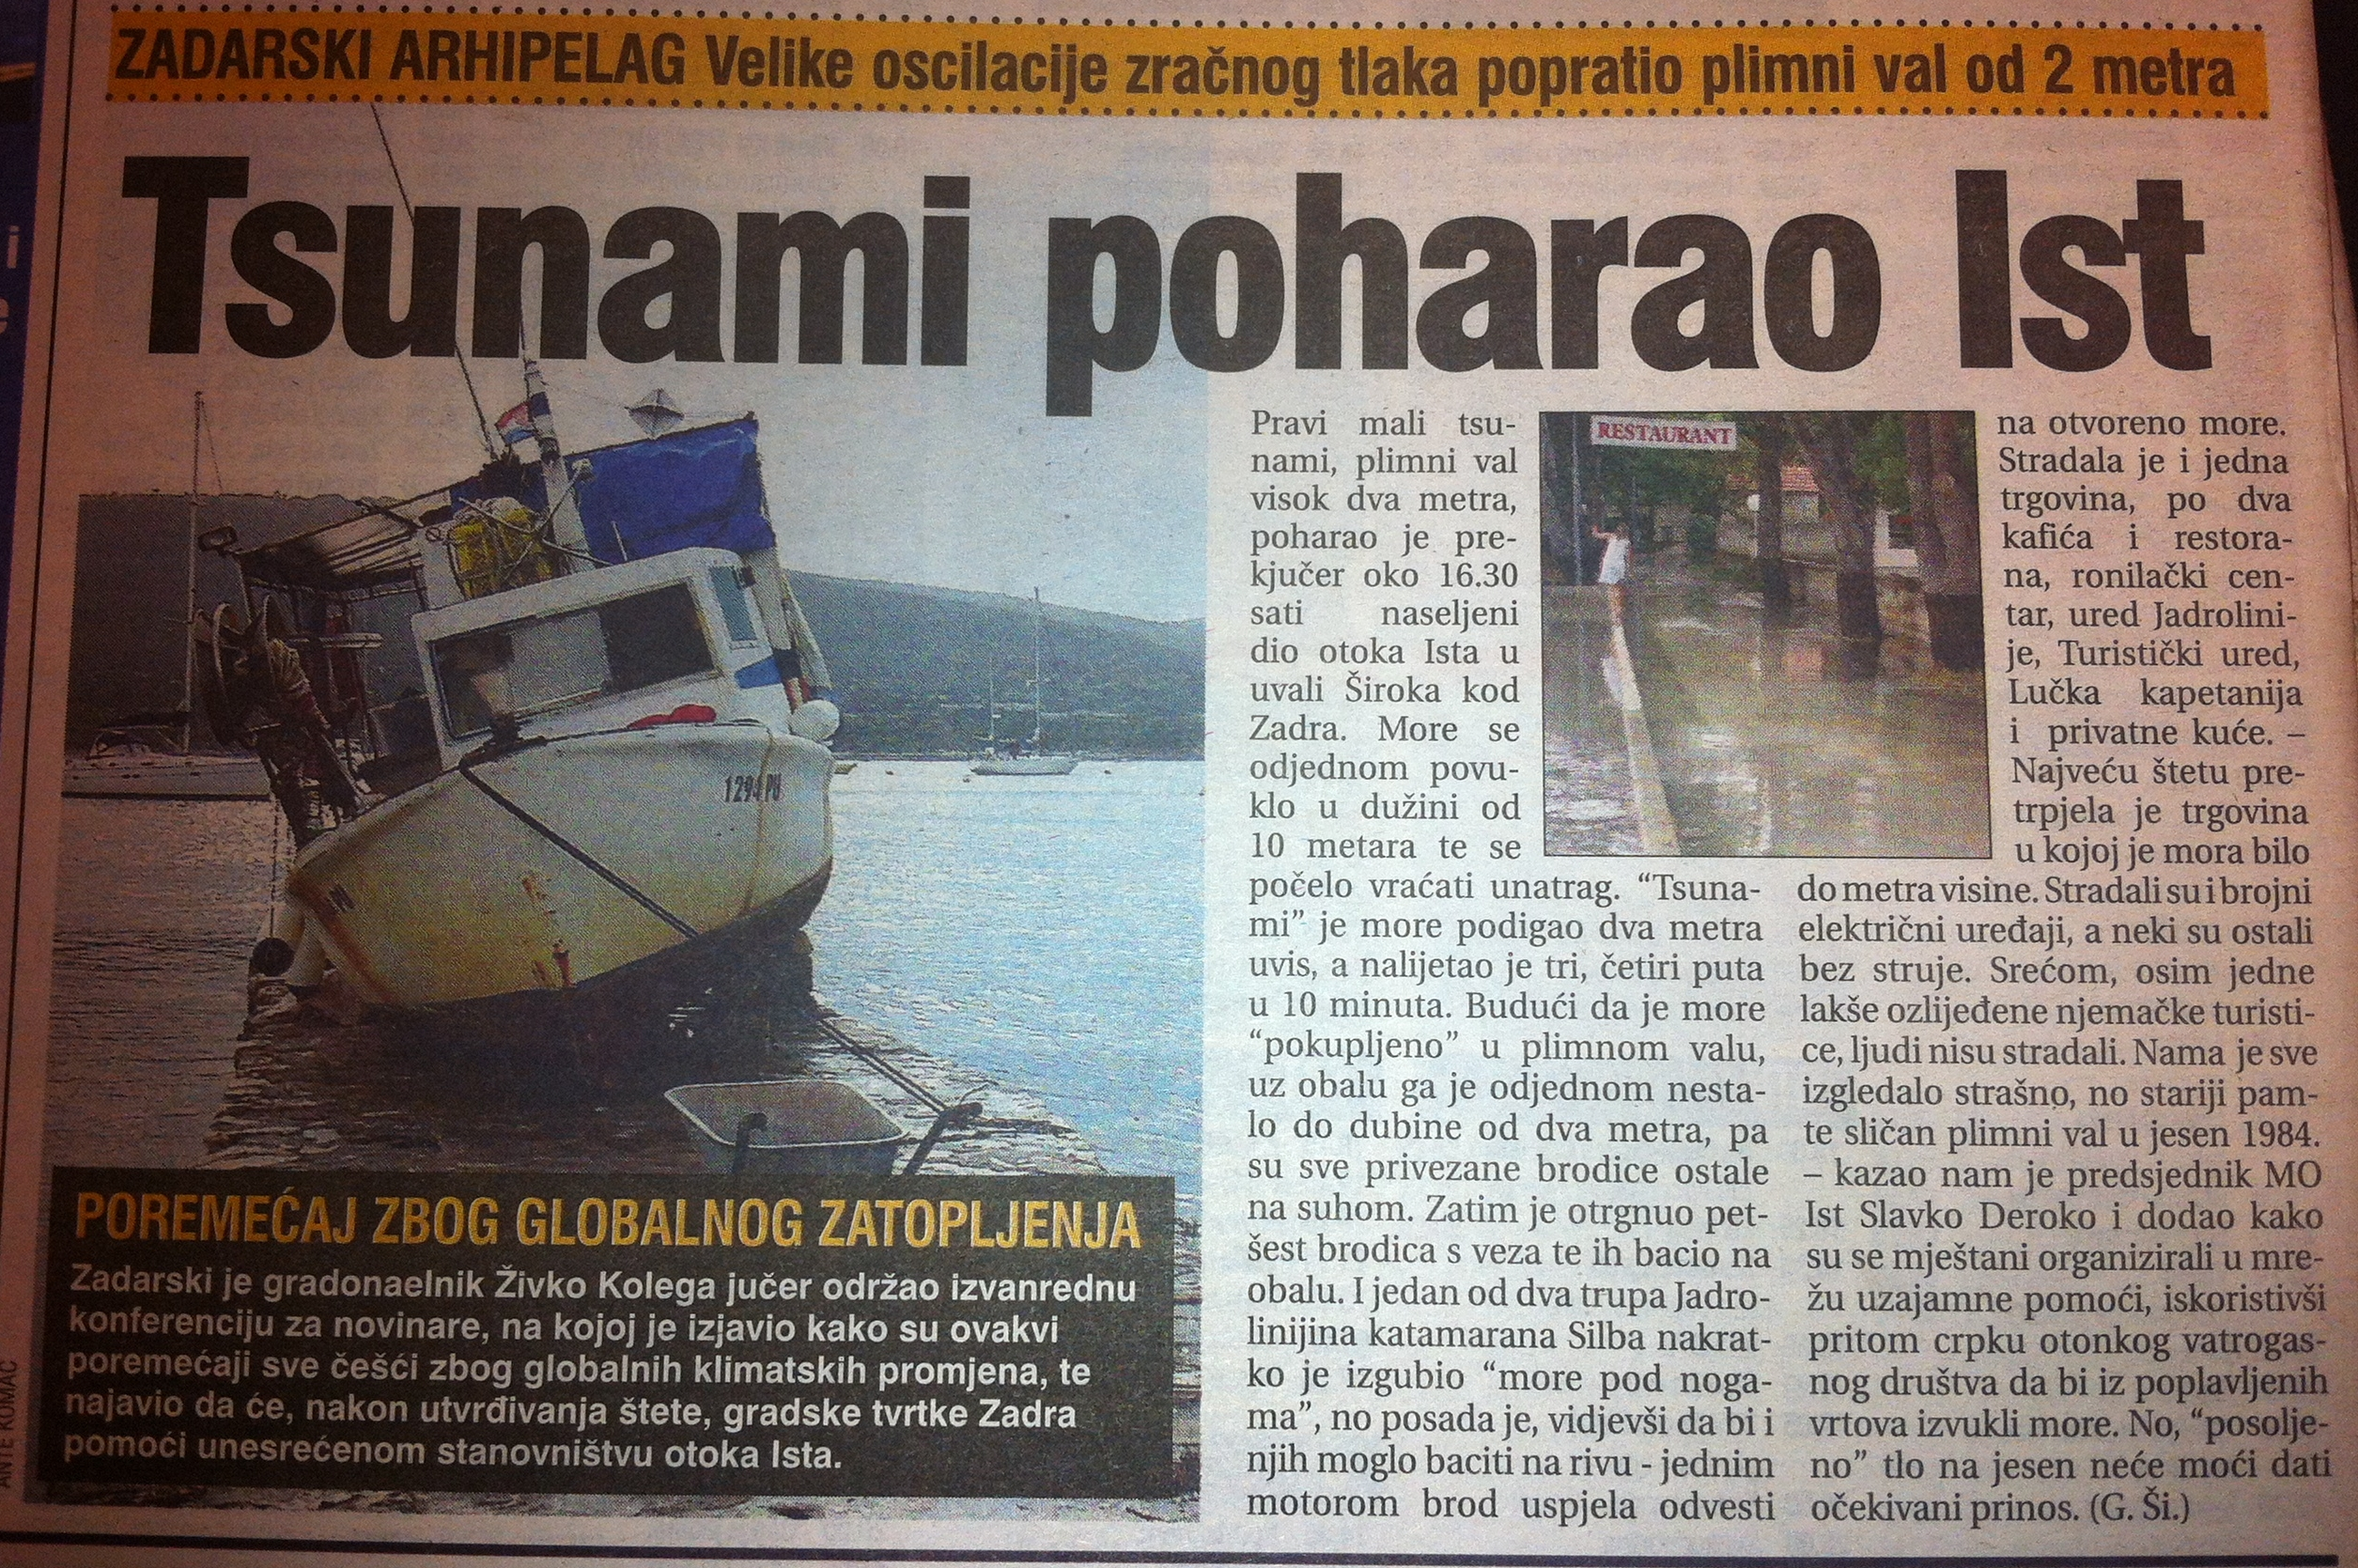 Meteorological tsunamis in the Adriatic Sea